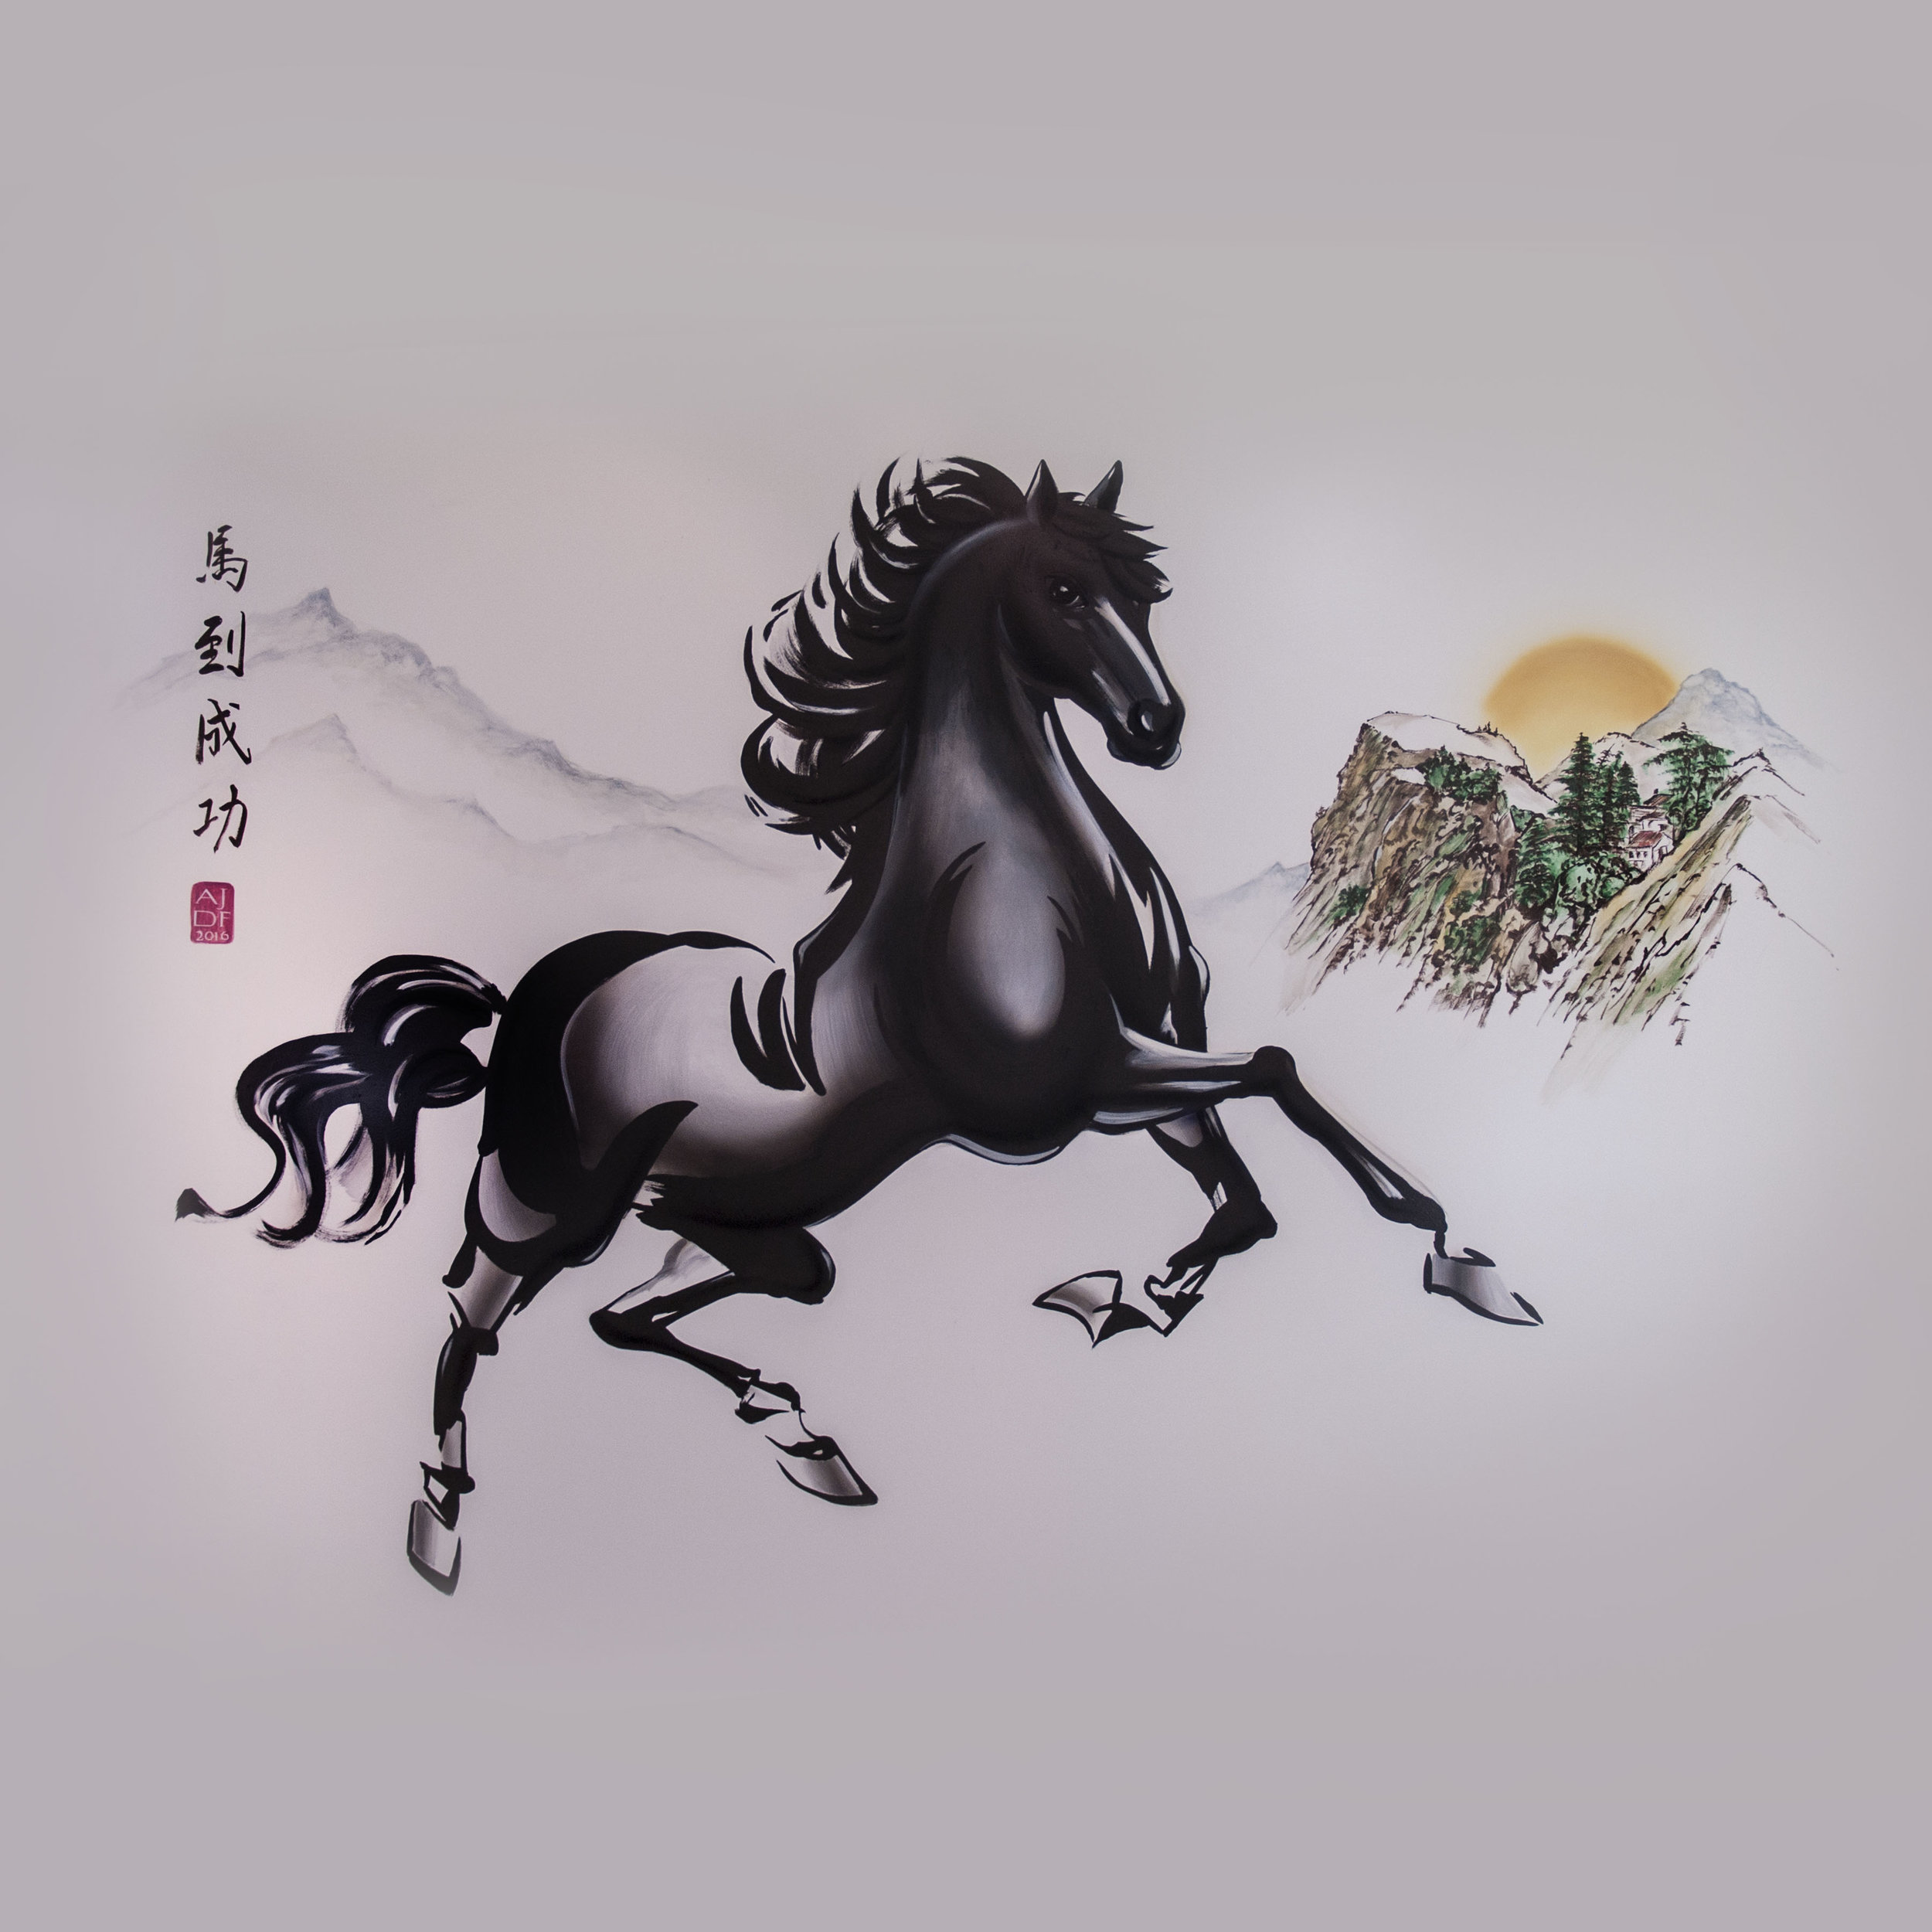 calligraphy horse corrected copy.jpg